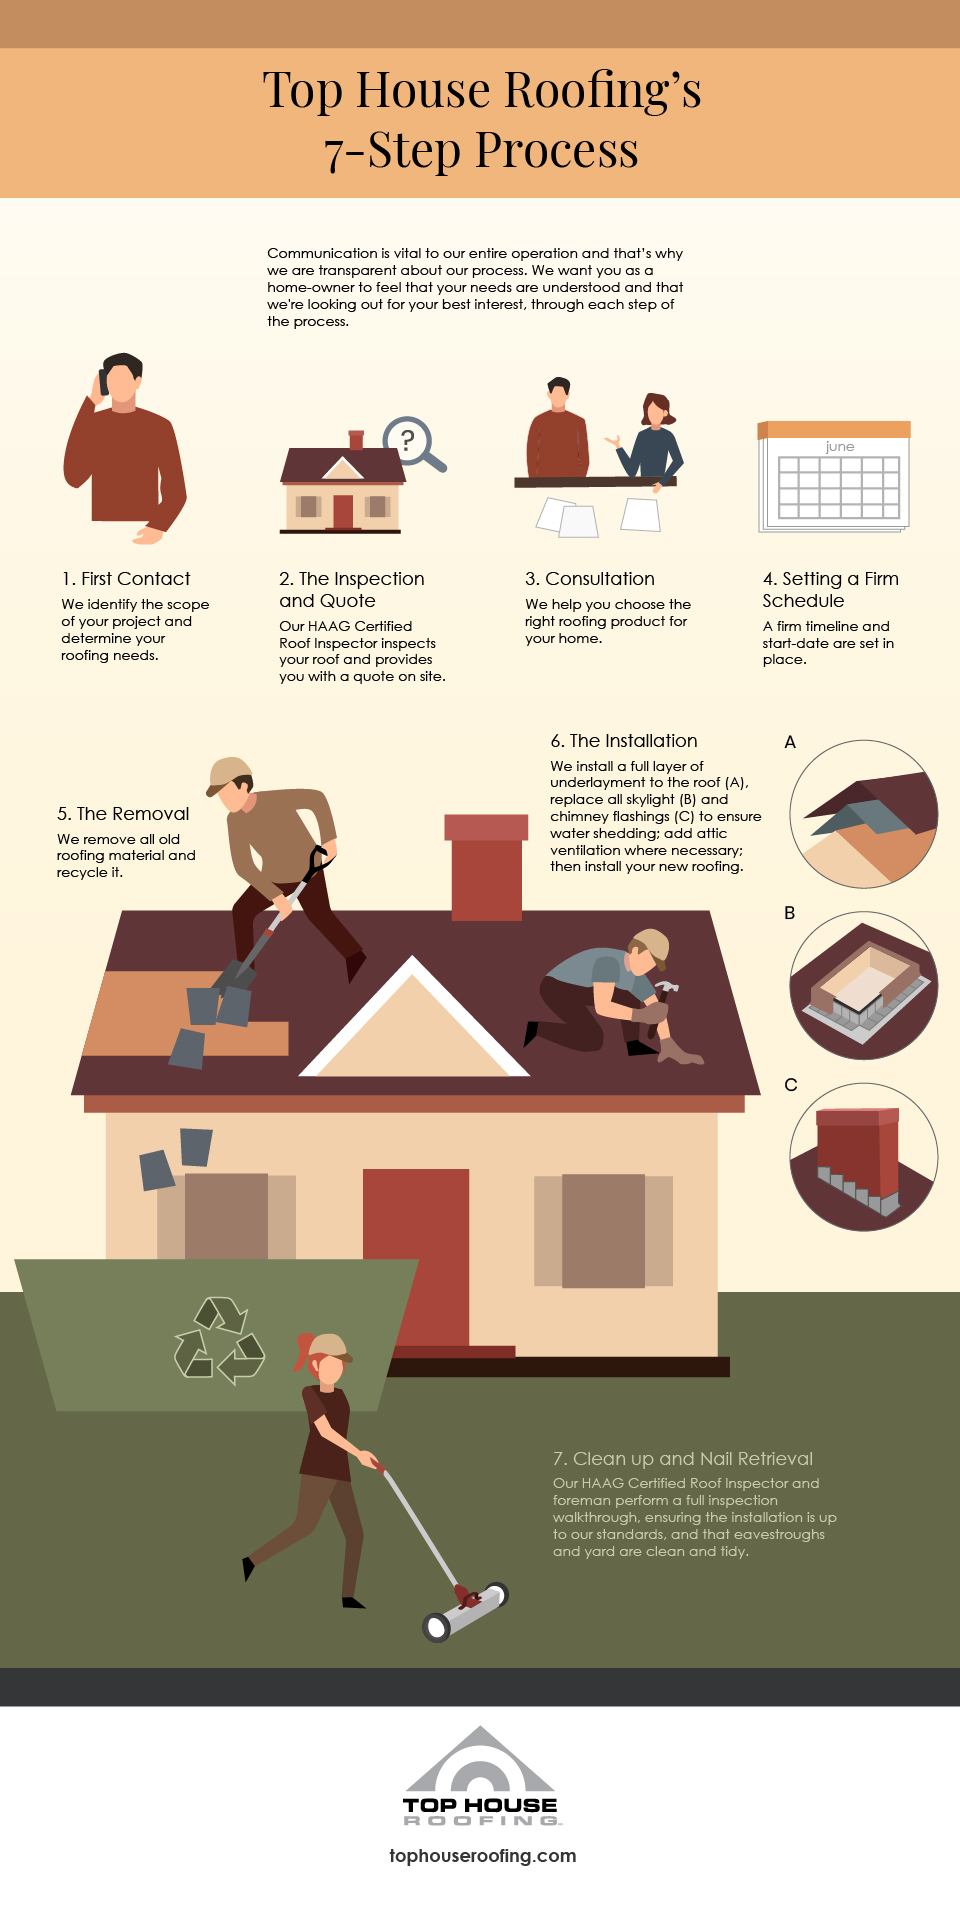 Top House Roofing's 7 Step Process